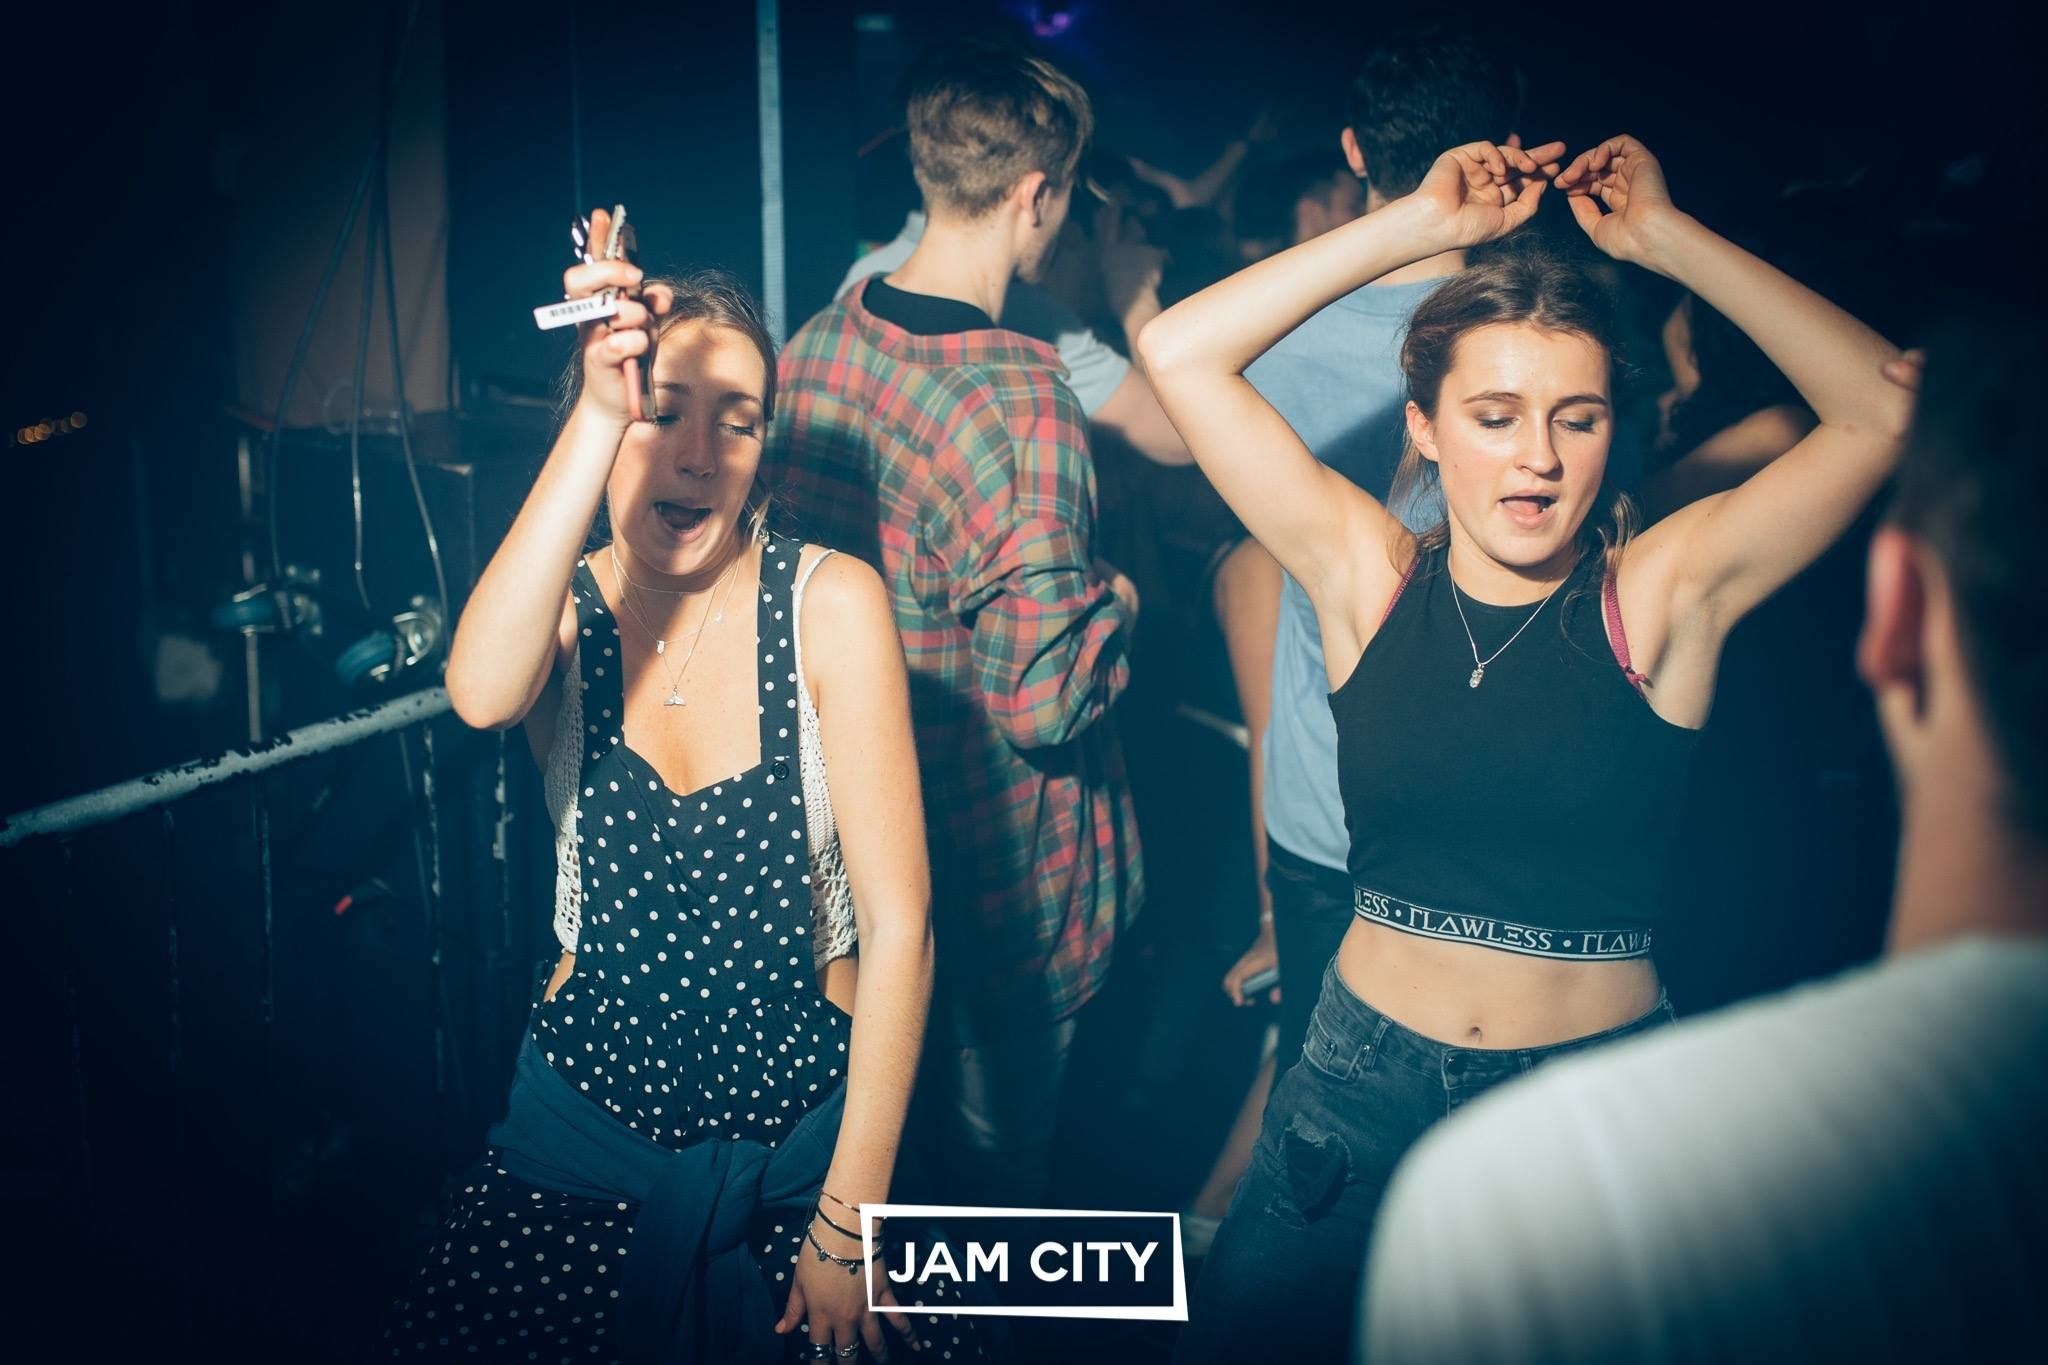 Image may contain: Night Life, Night Club, Club, Leisure Activities, Dance Pose, Dance, Person, People, Human